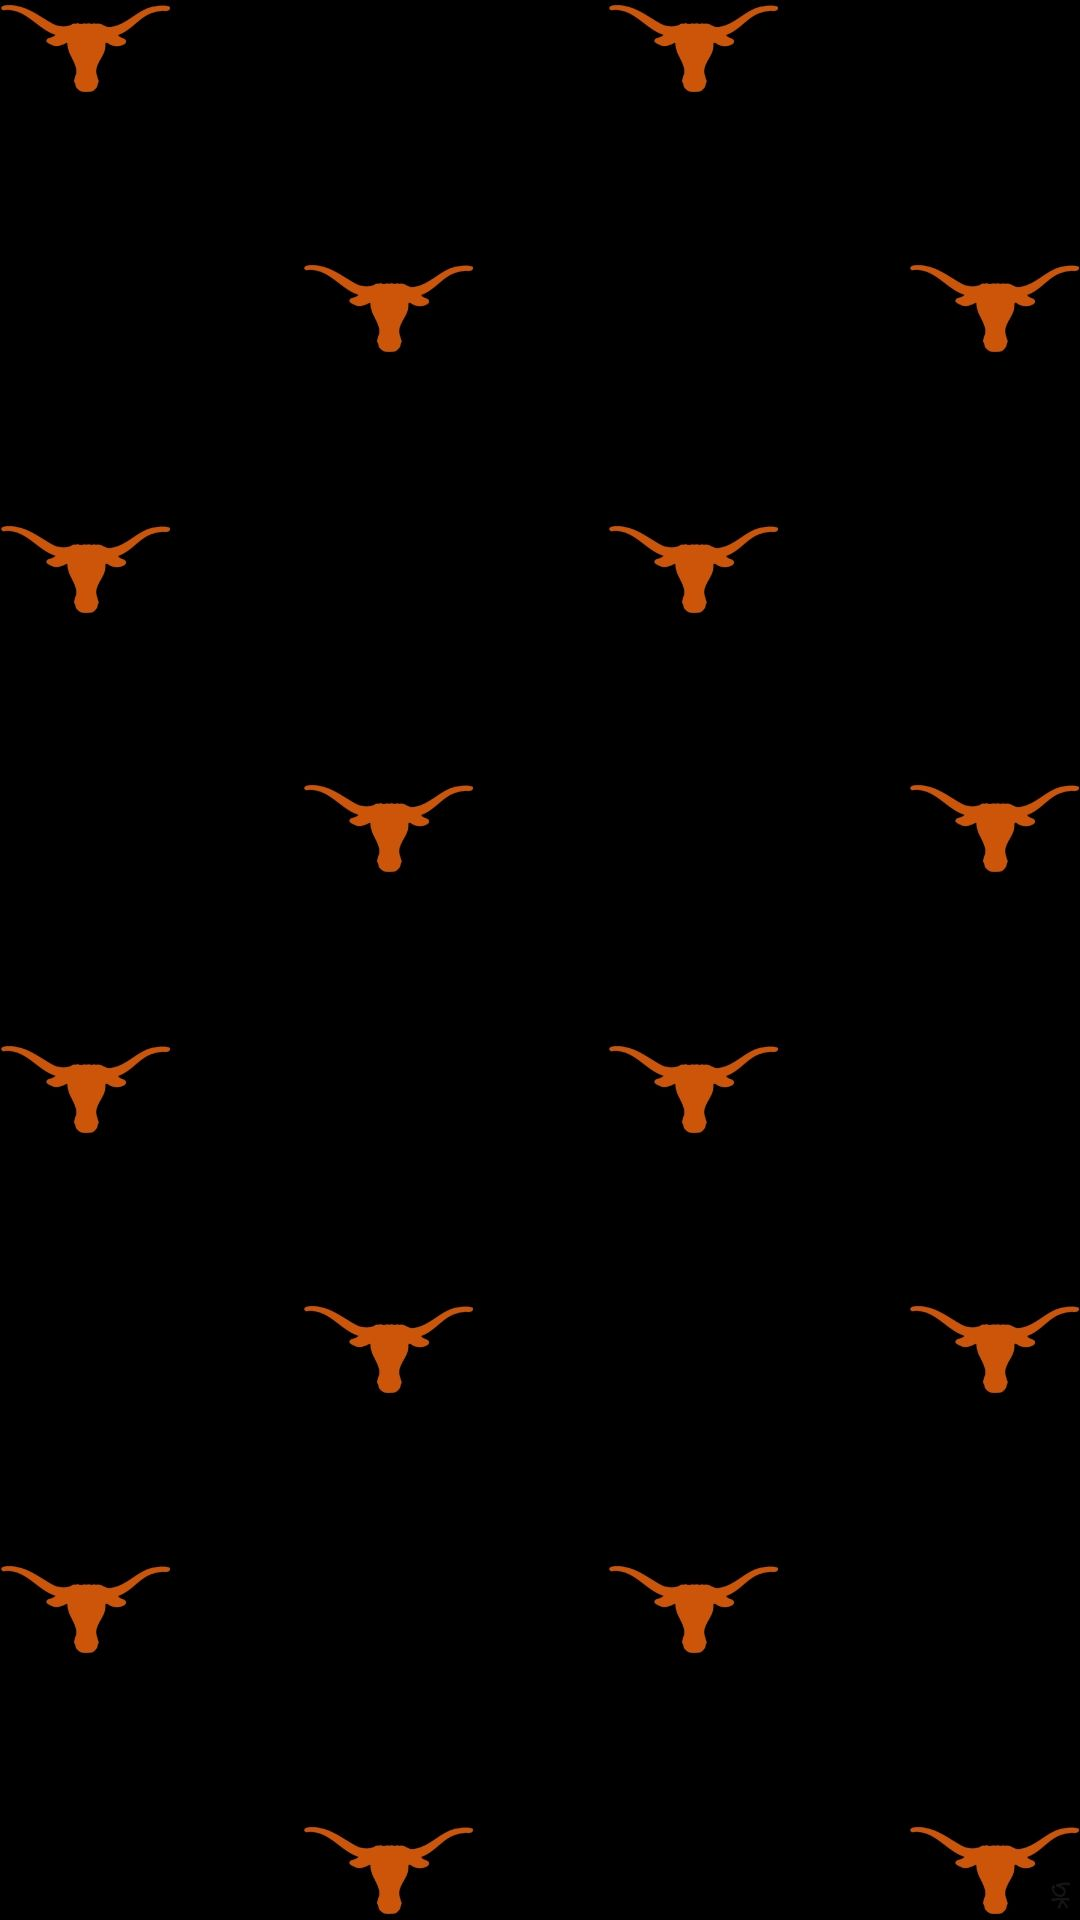 10 Latest Texas Longhorns Iphone Wallpaper Full Hd 1080p For Pc Background Texas Longhorns Logo Texas Longhorns Longhorns Football